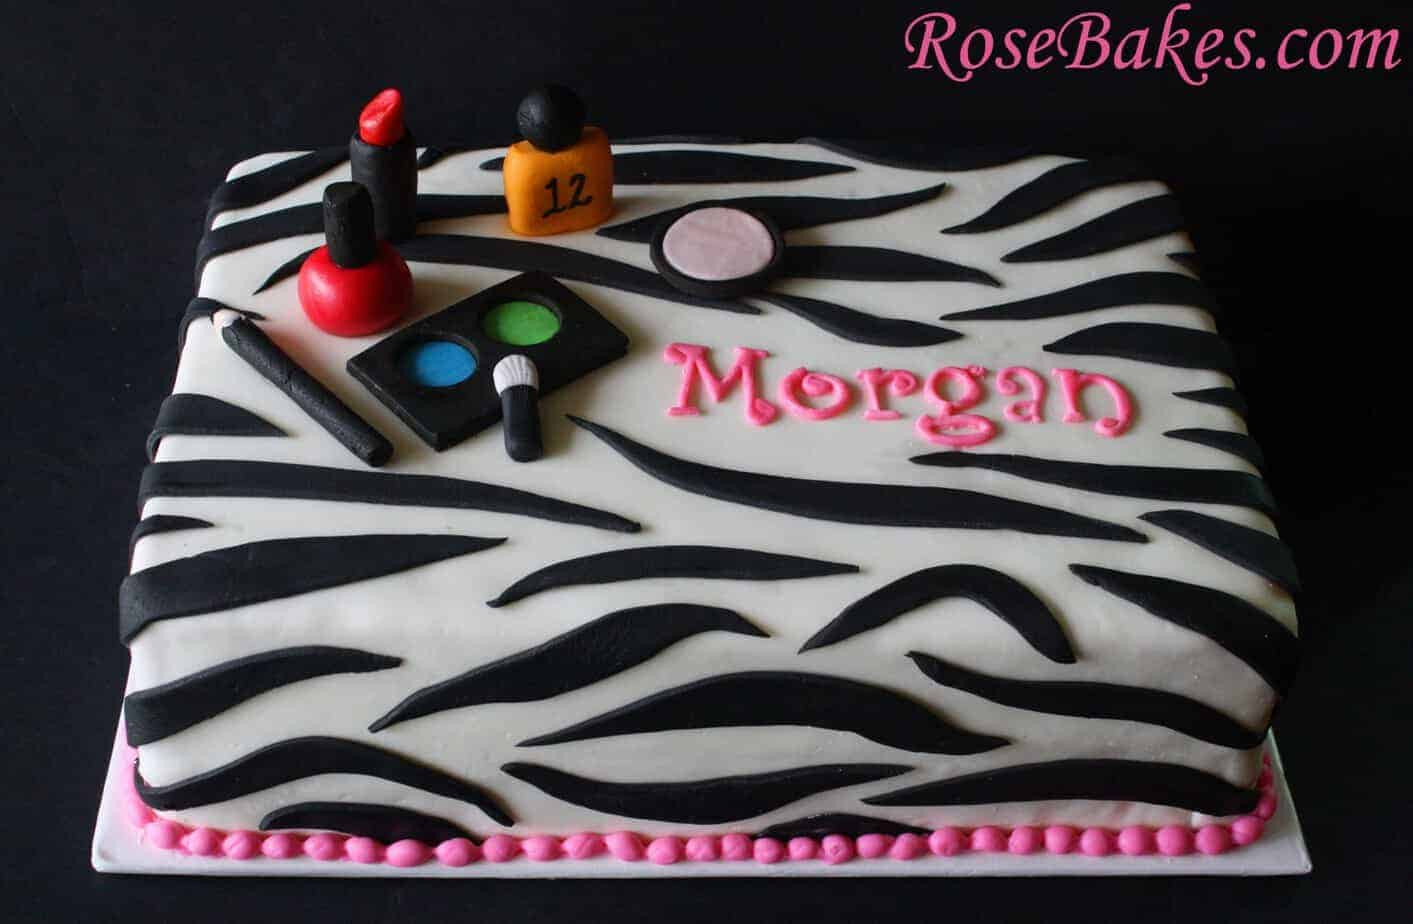 Zebra Stripes Sheet Cakes Birthdays Graduation With Hot Pink Make Up